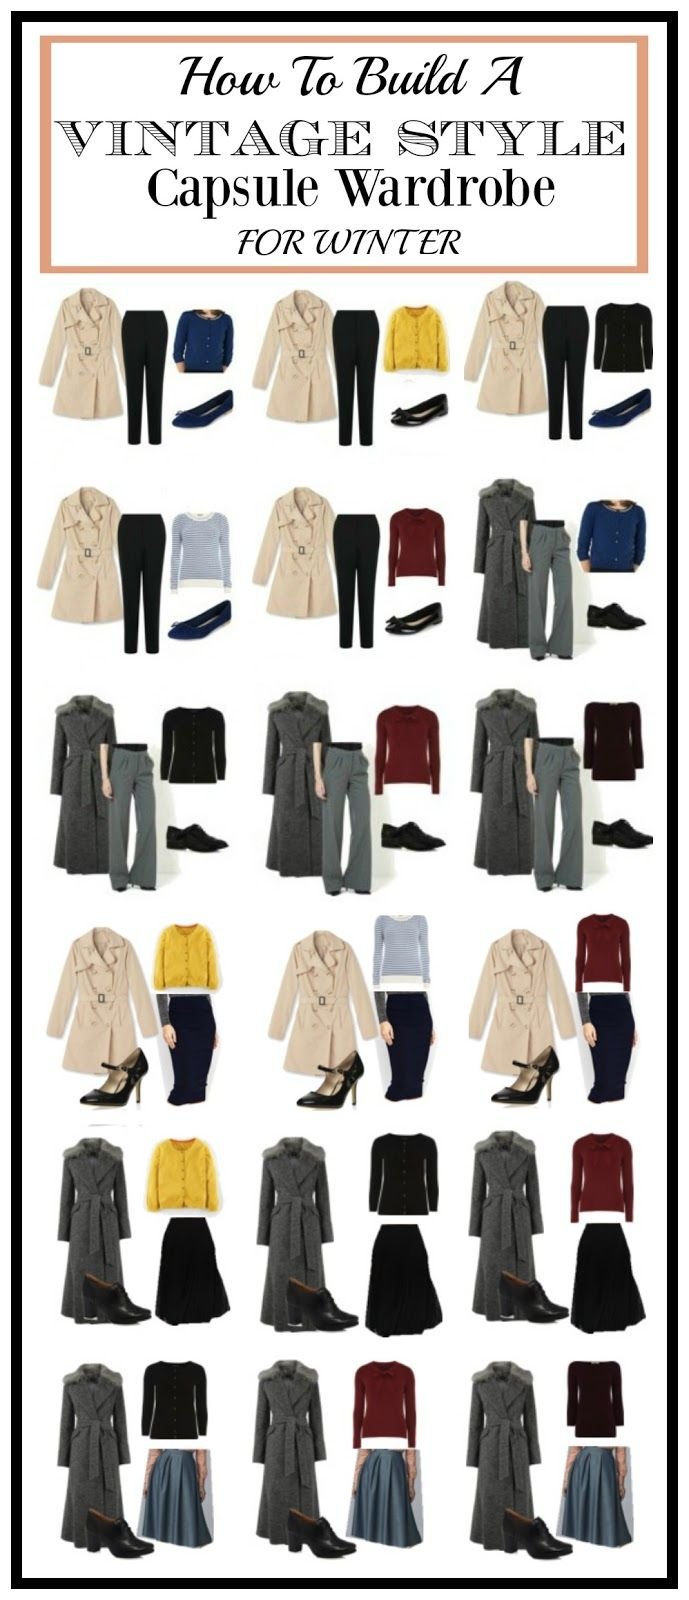 How To Build A Vintage Style Capsule Wardrobe For Winter